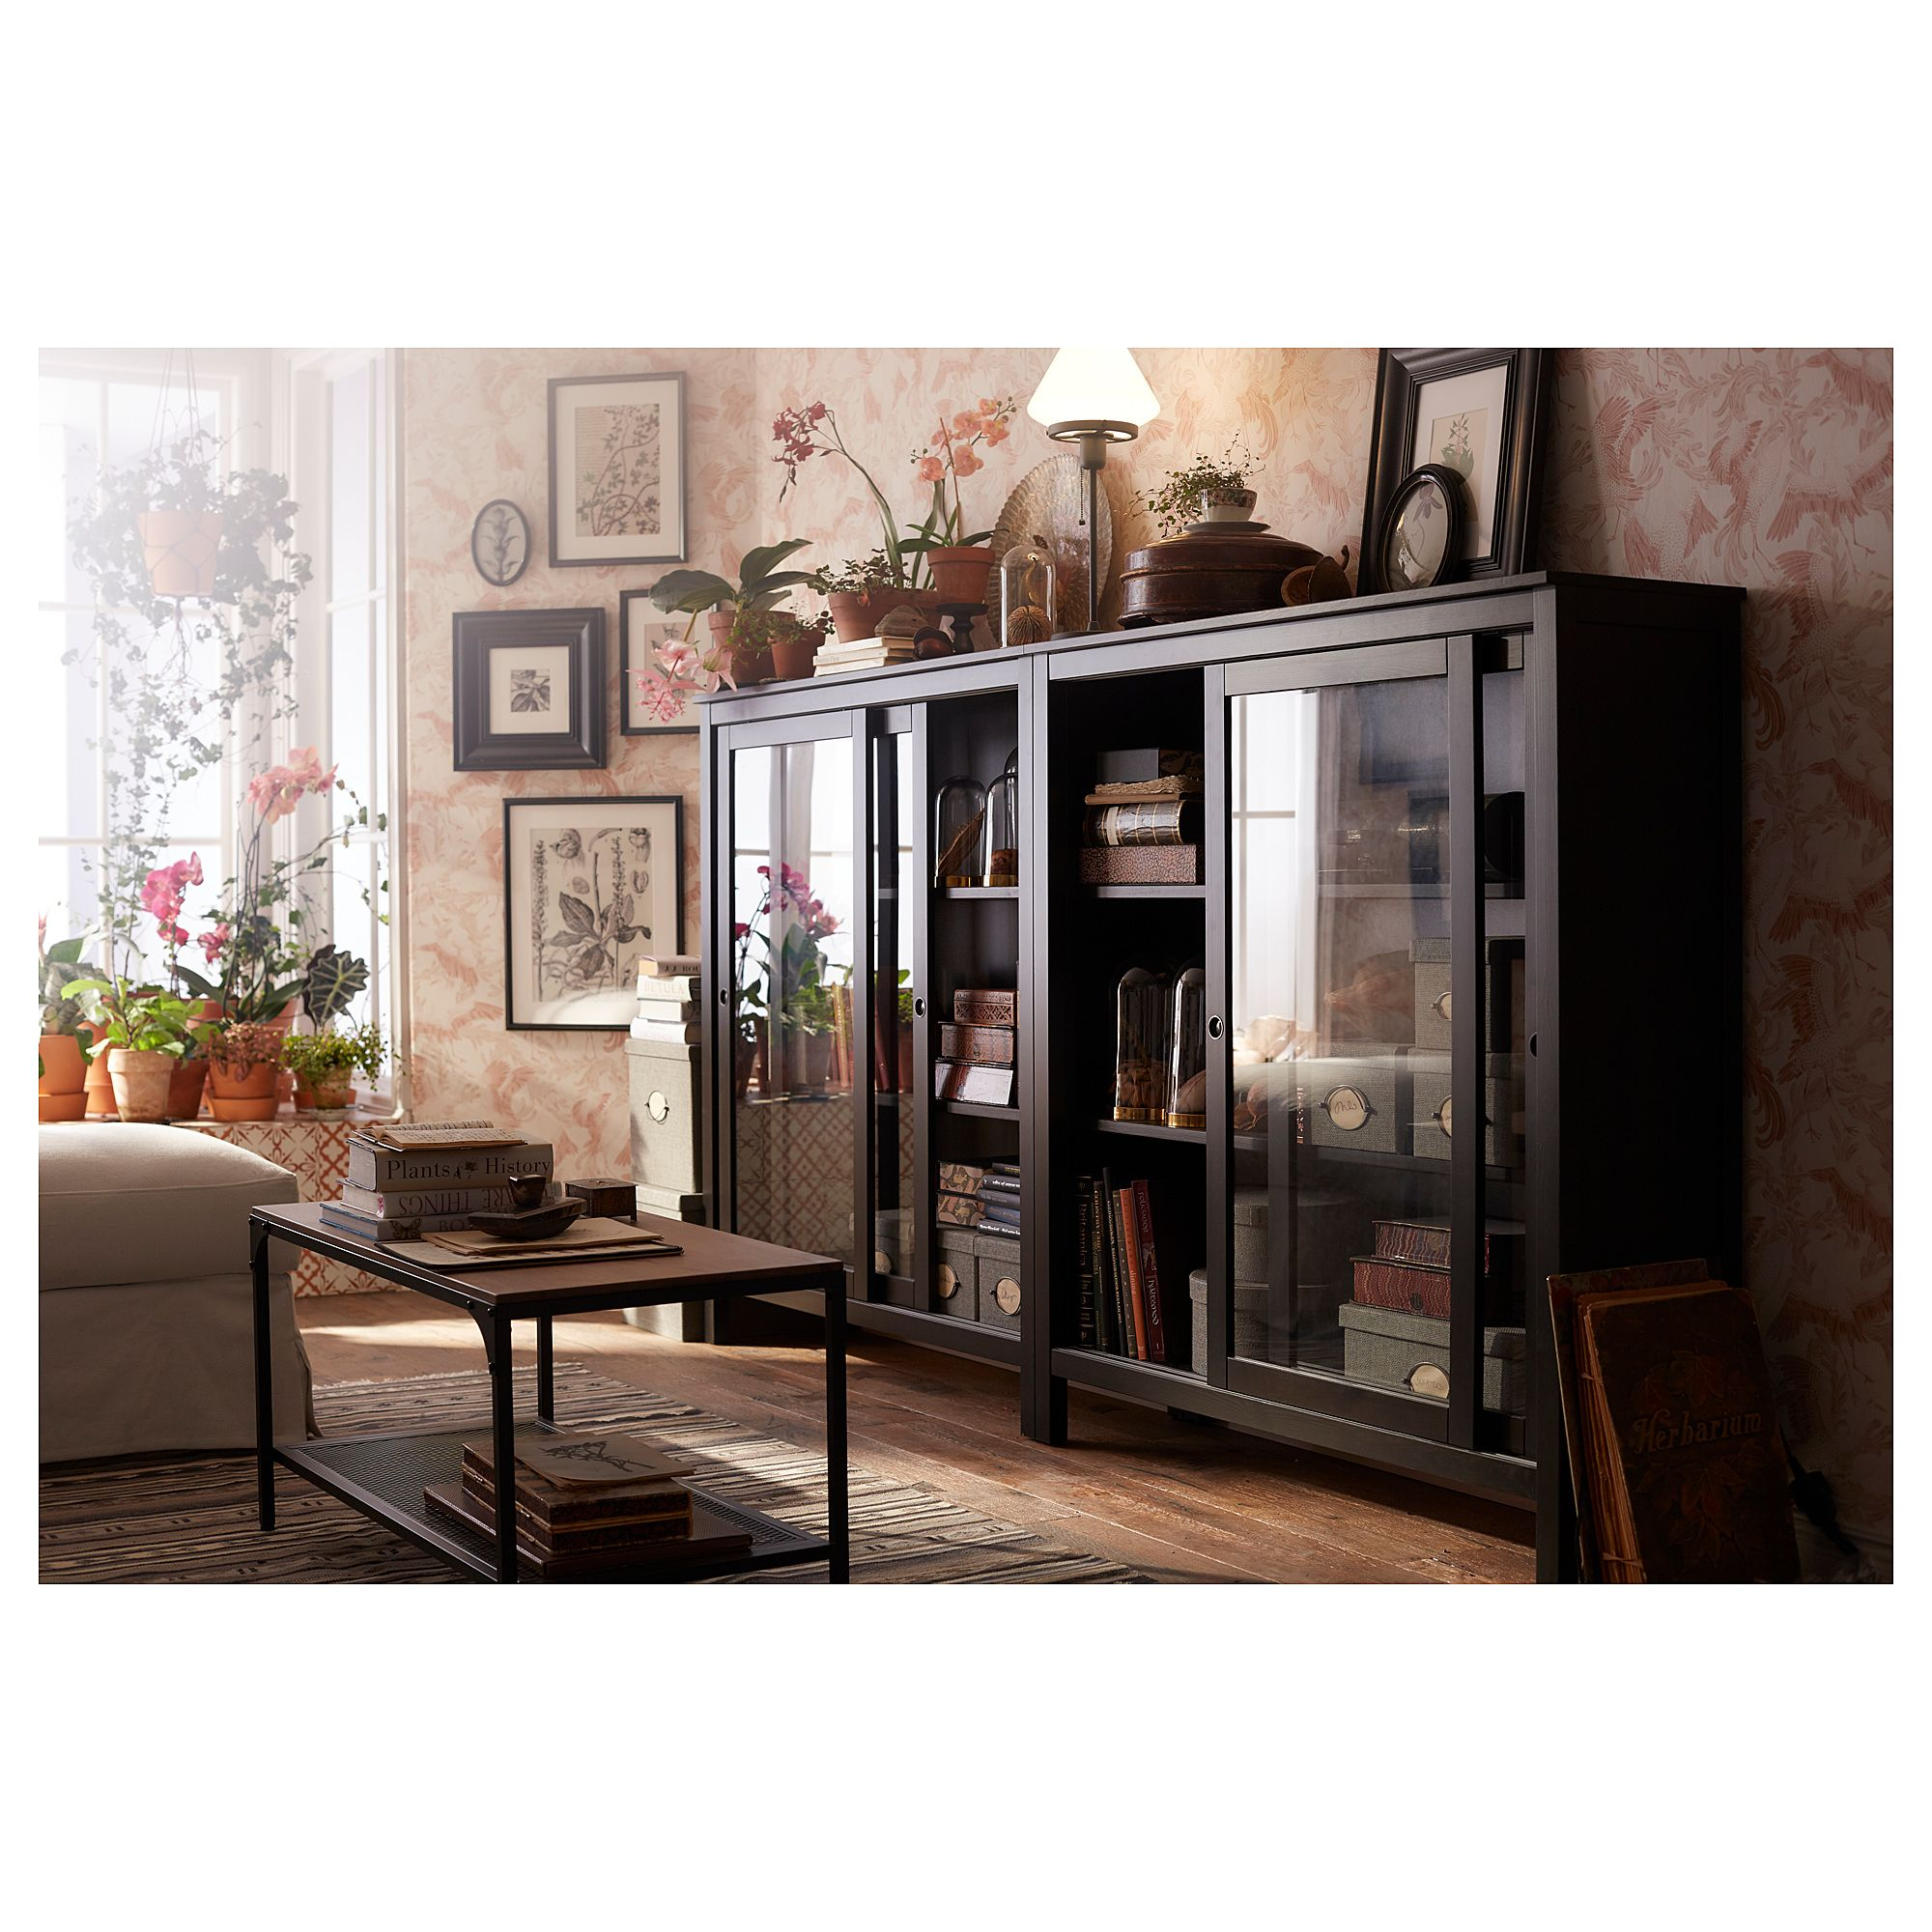 Best Ikea Hemnes Glass Door Cabinet Black Brown Sliding 640 x 480